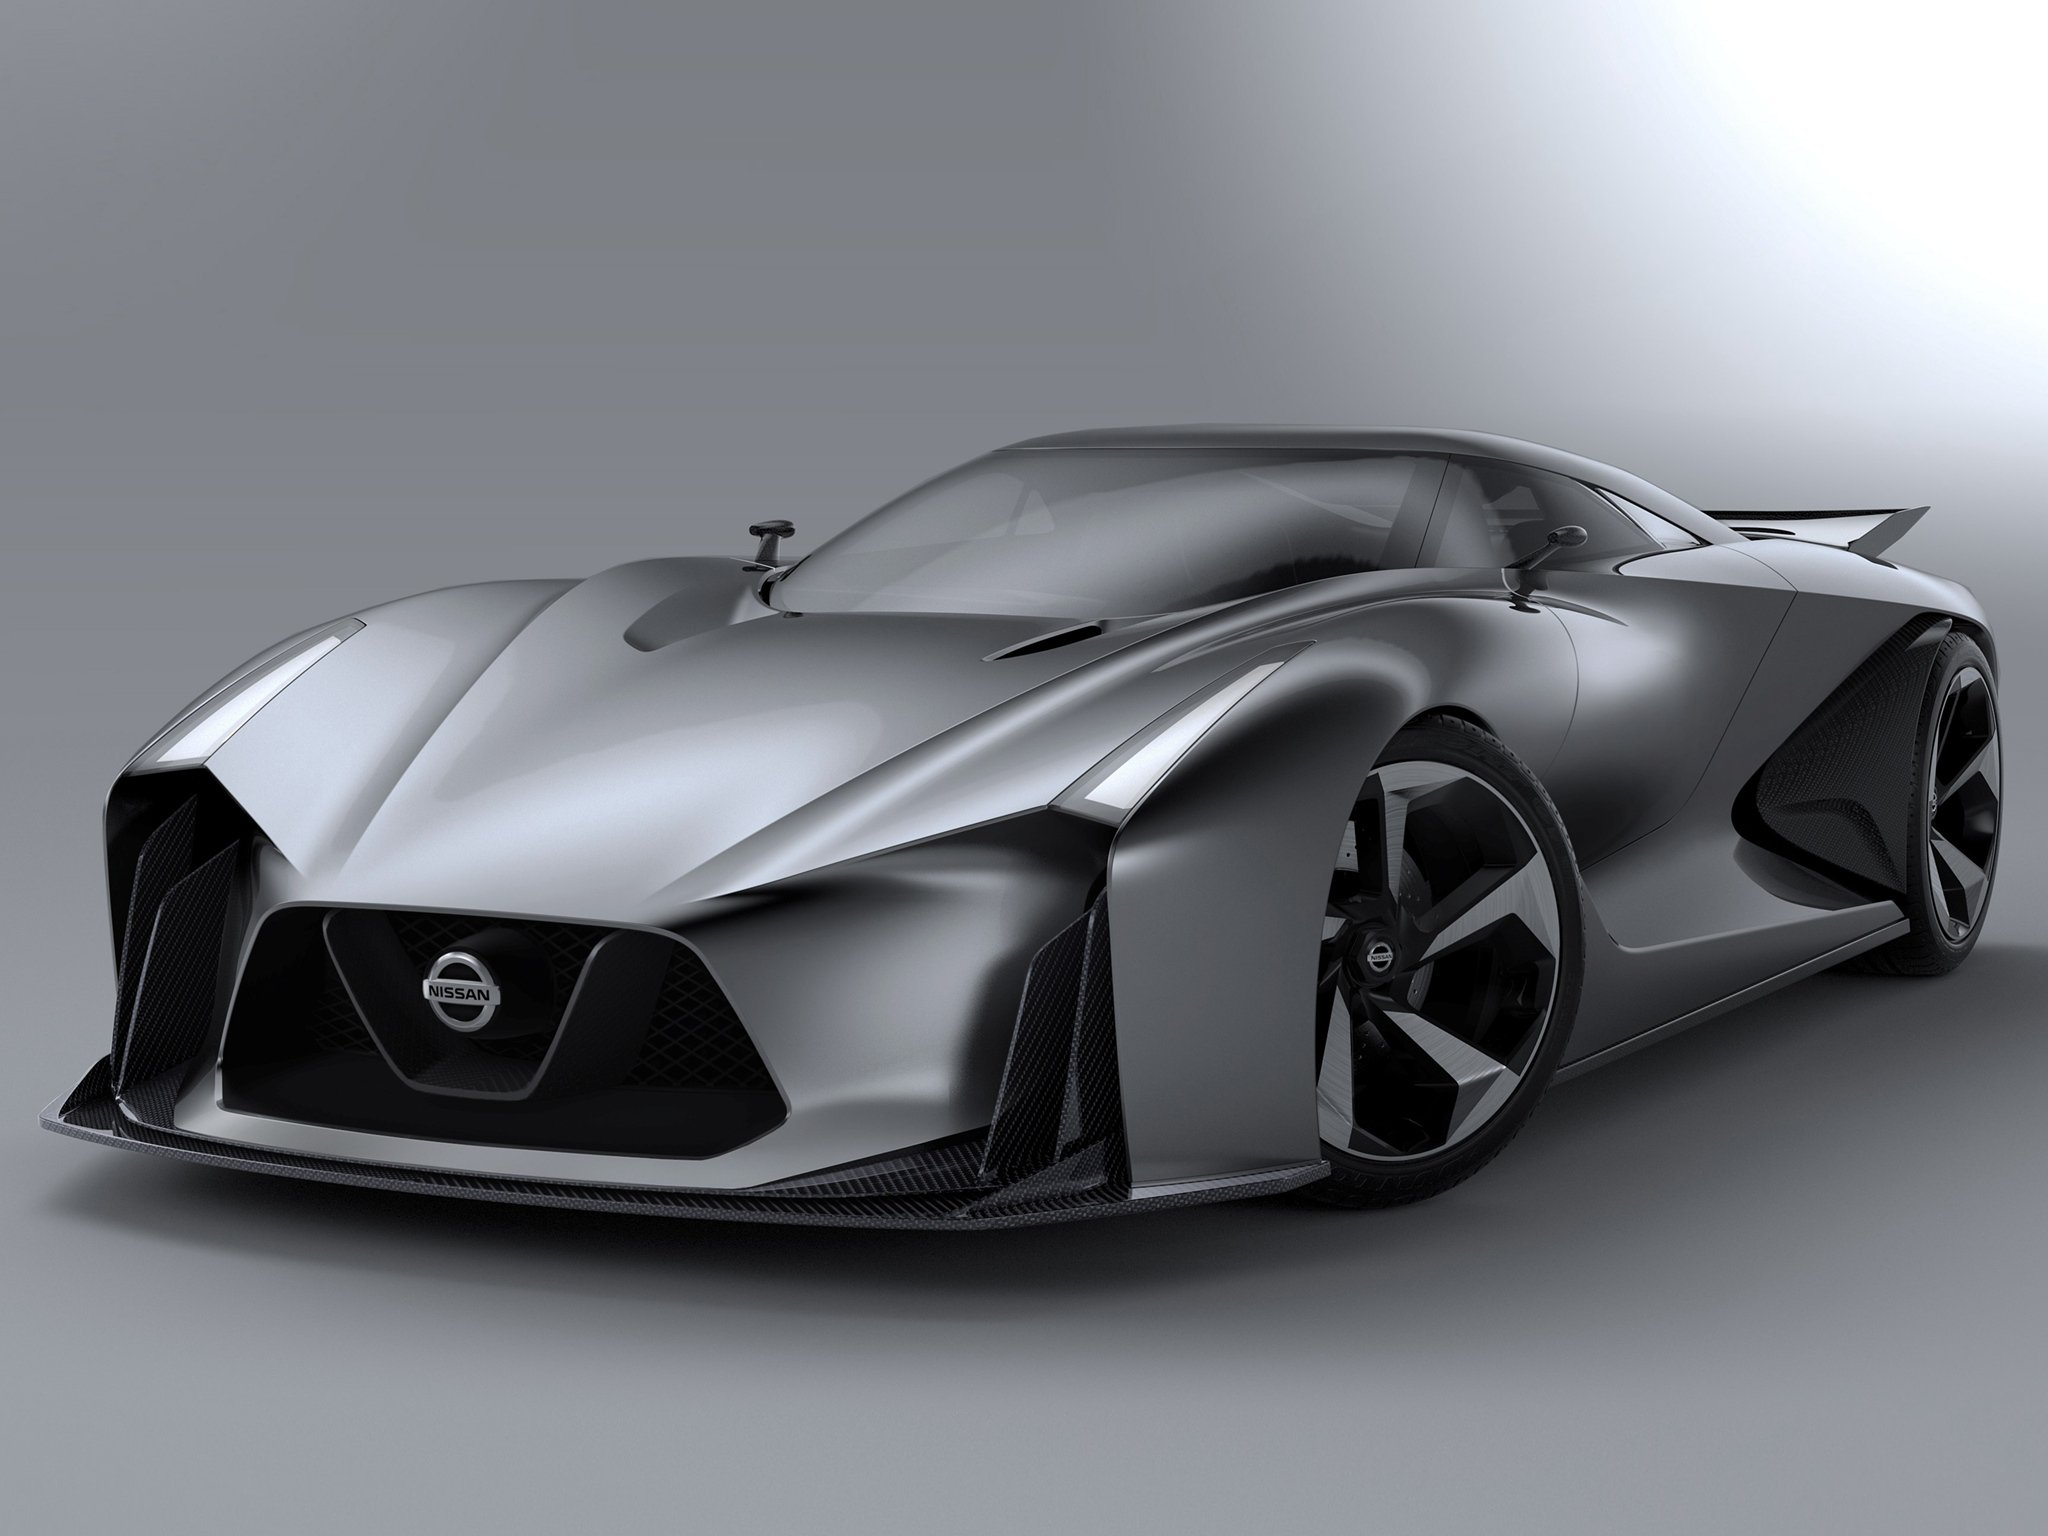 2014 nissan concept 2020 vision gran turismo supercar d wallpaper 2048x1536 385335 wallpaperup. Black Bedroom Furniture Sets. Home Design Ideas